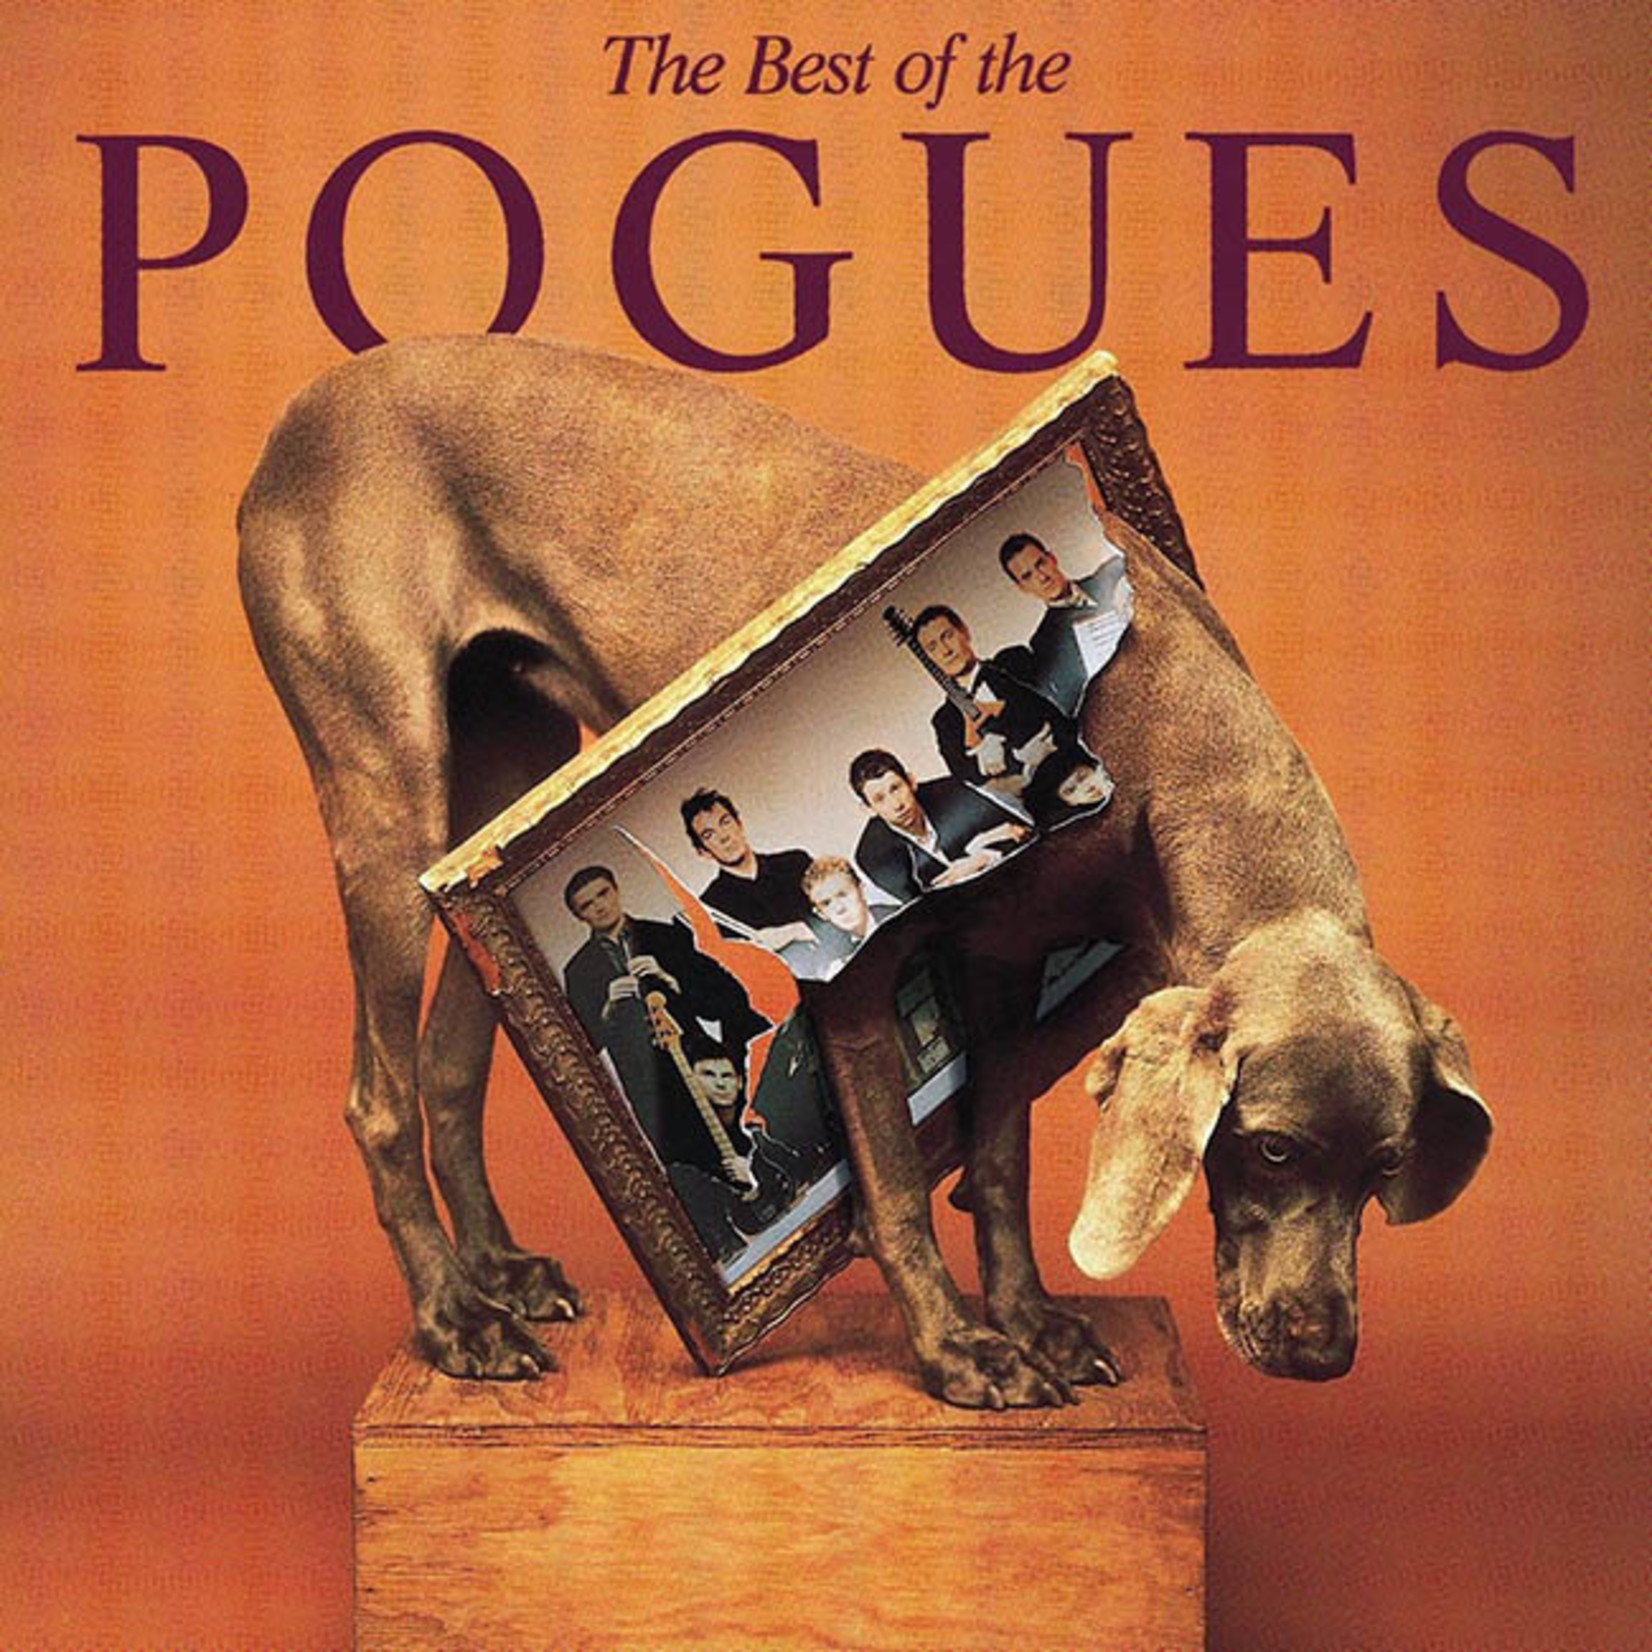 [New] Pogues: The Best Of The Pogues